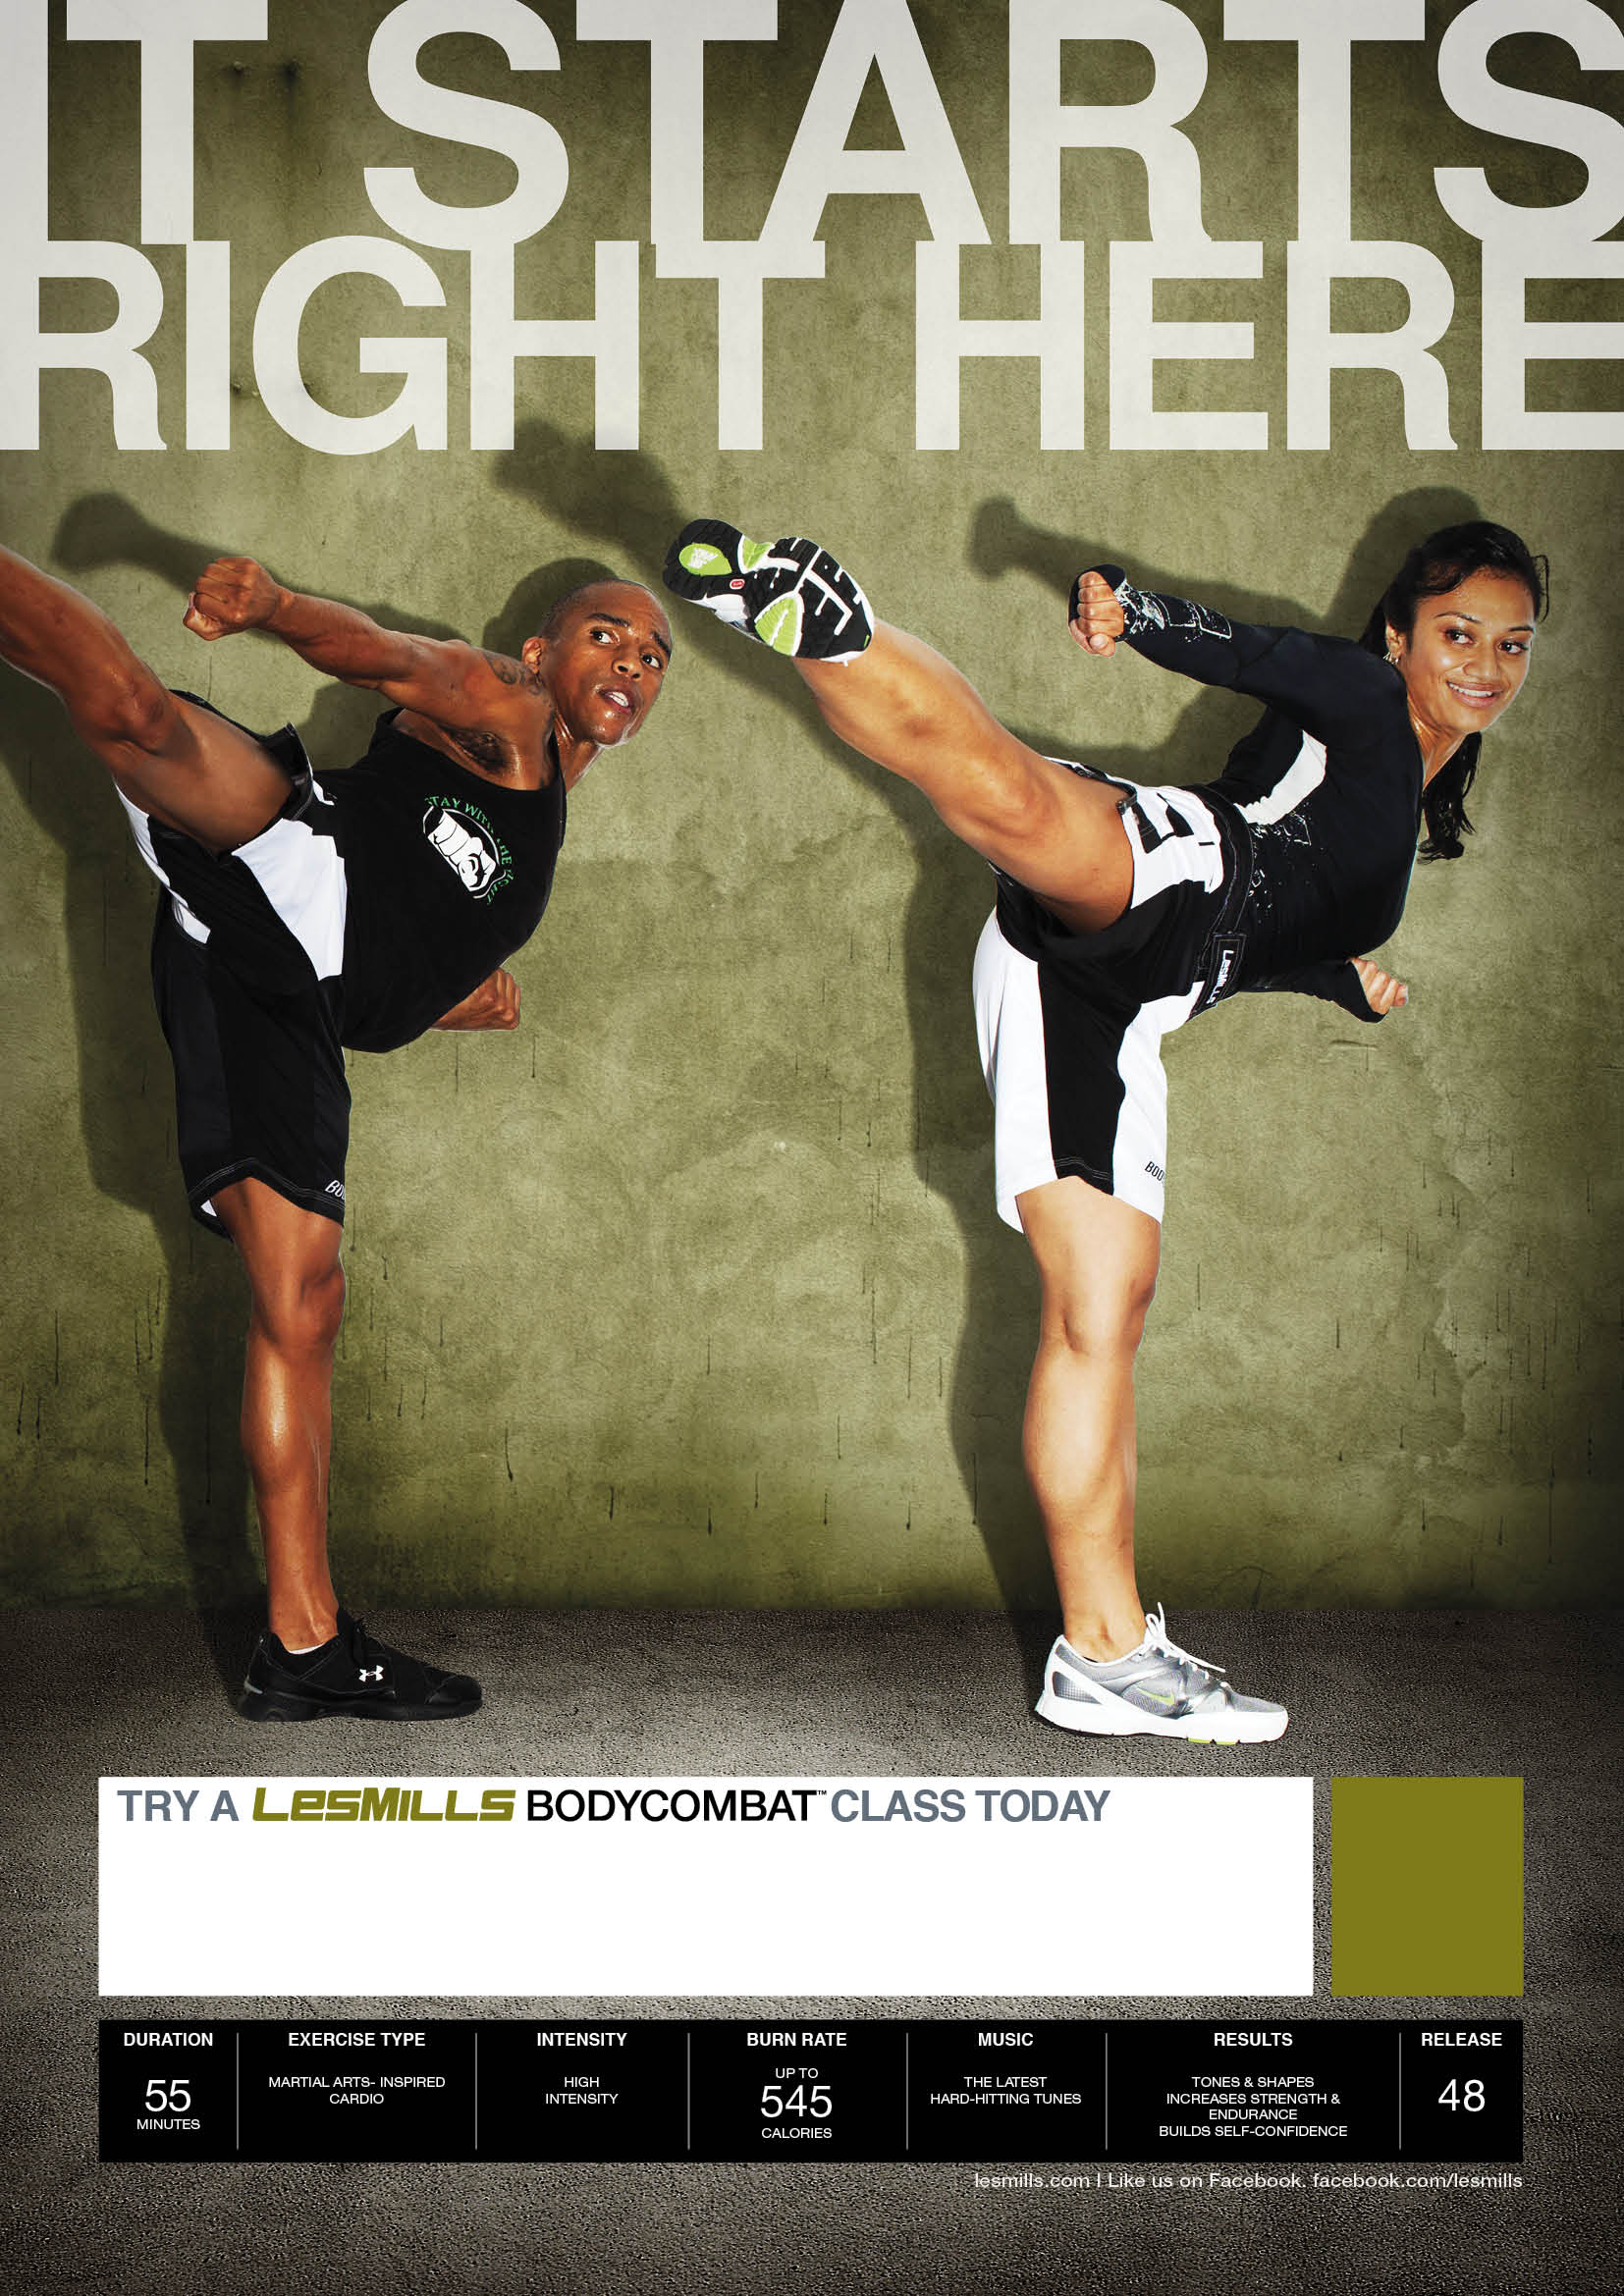 LES0004_A2_Bodycombat_Poster[1]